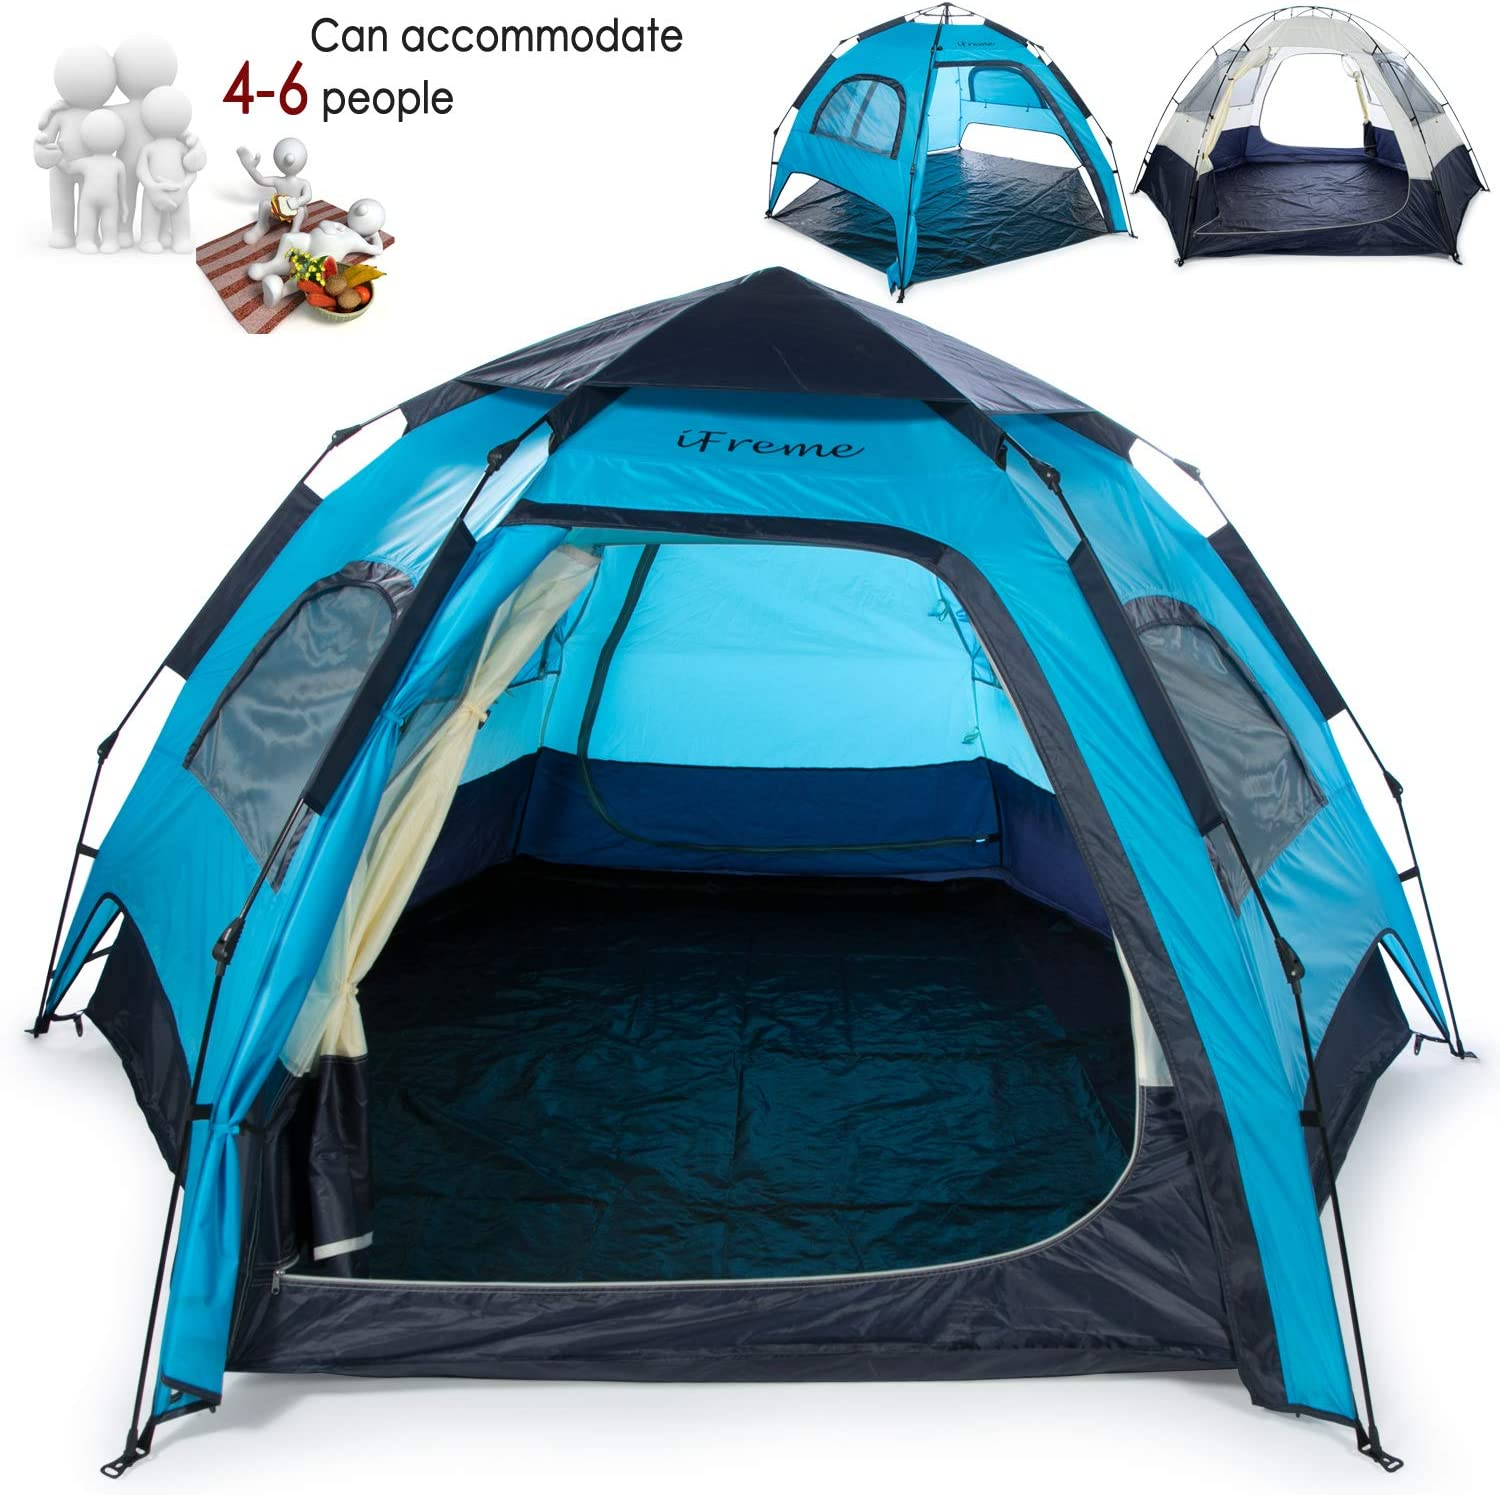 iFreme Lightweight Portable Camping Tent,4-6 Person Large Tent with Double Layer Instant Setup Tent,Waterproof Camping Tent for 4 Seasons